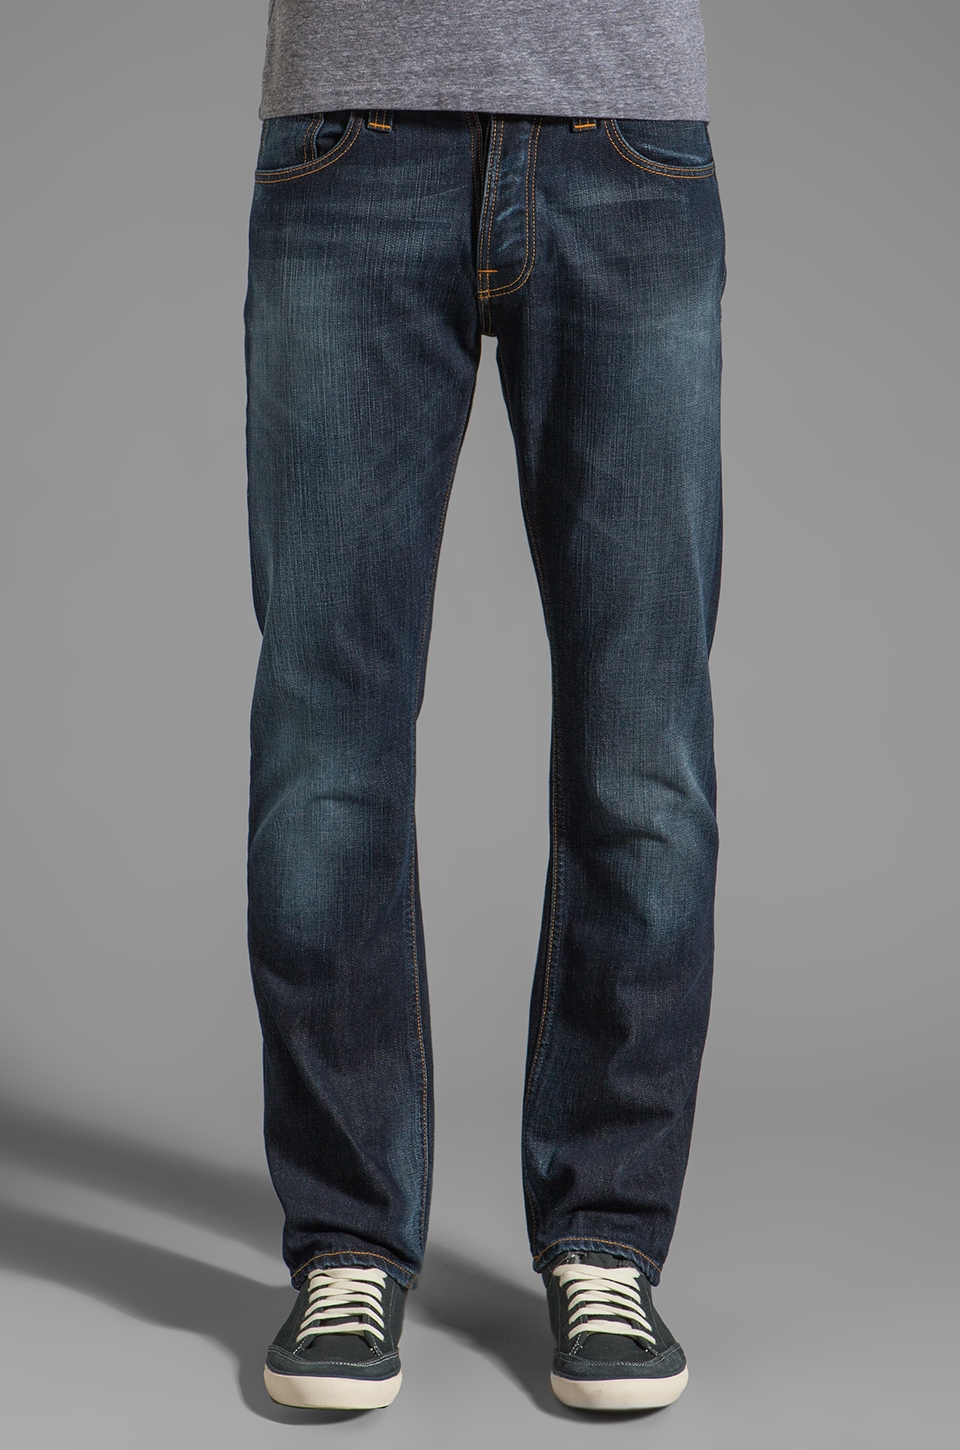 Nudie Jeans Average Joe in Org. Contrast Indigo